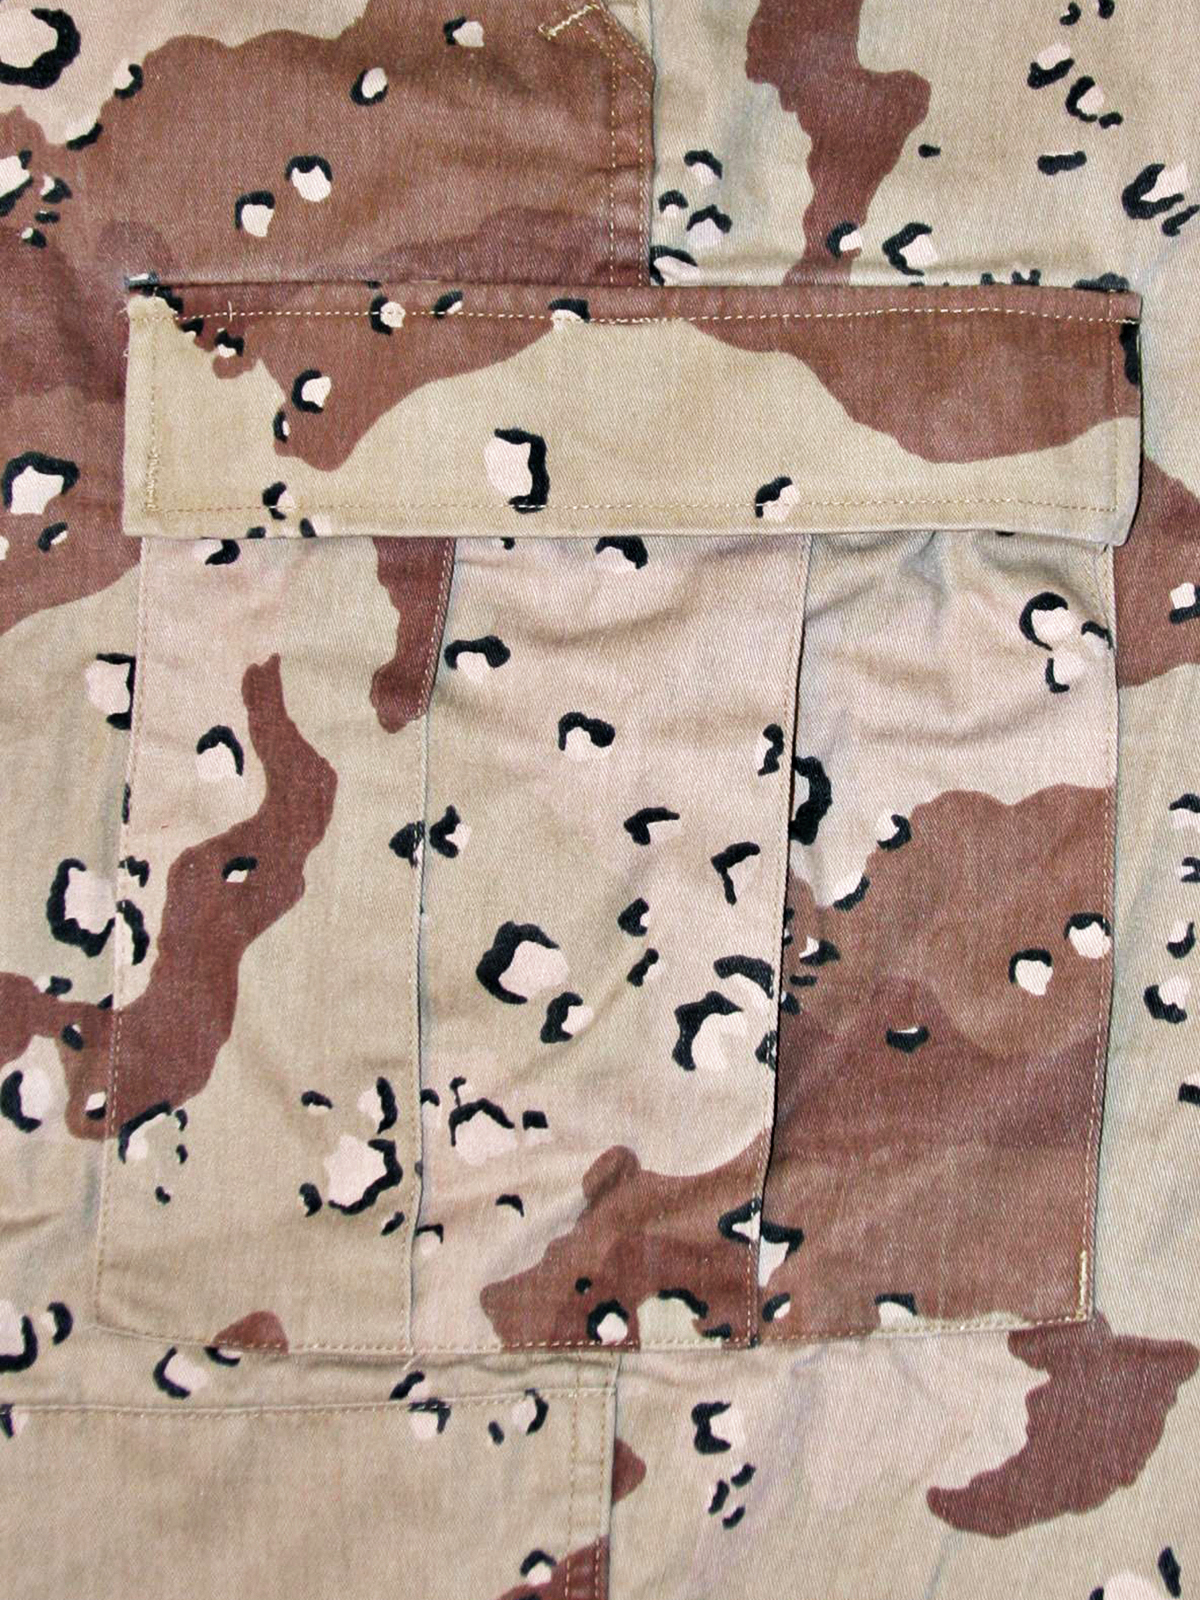 List of military clothing camouflage patterns | Military